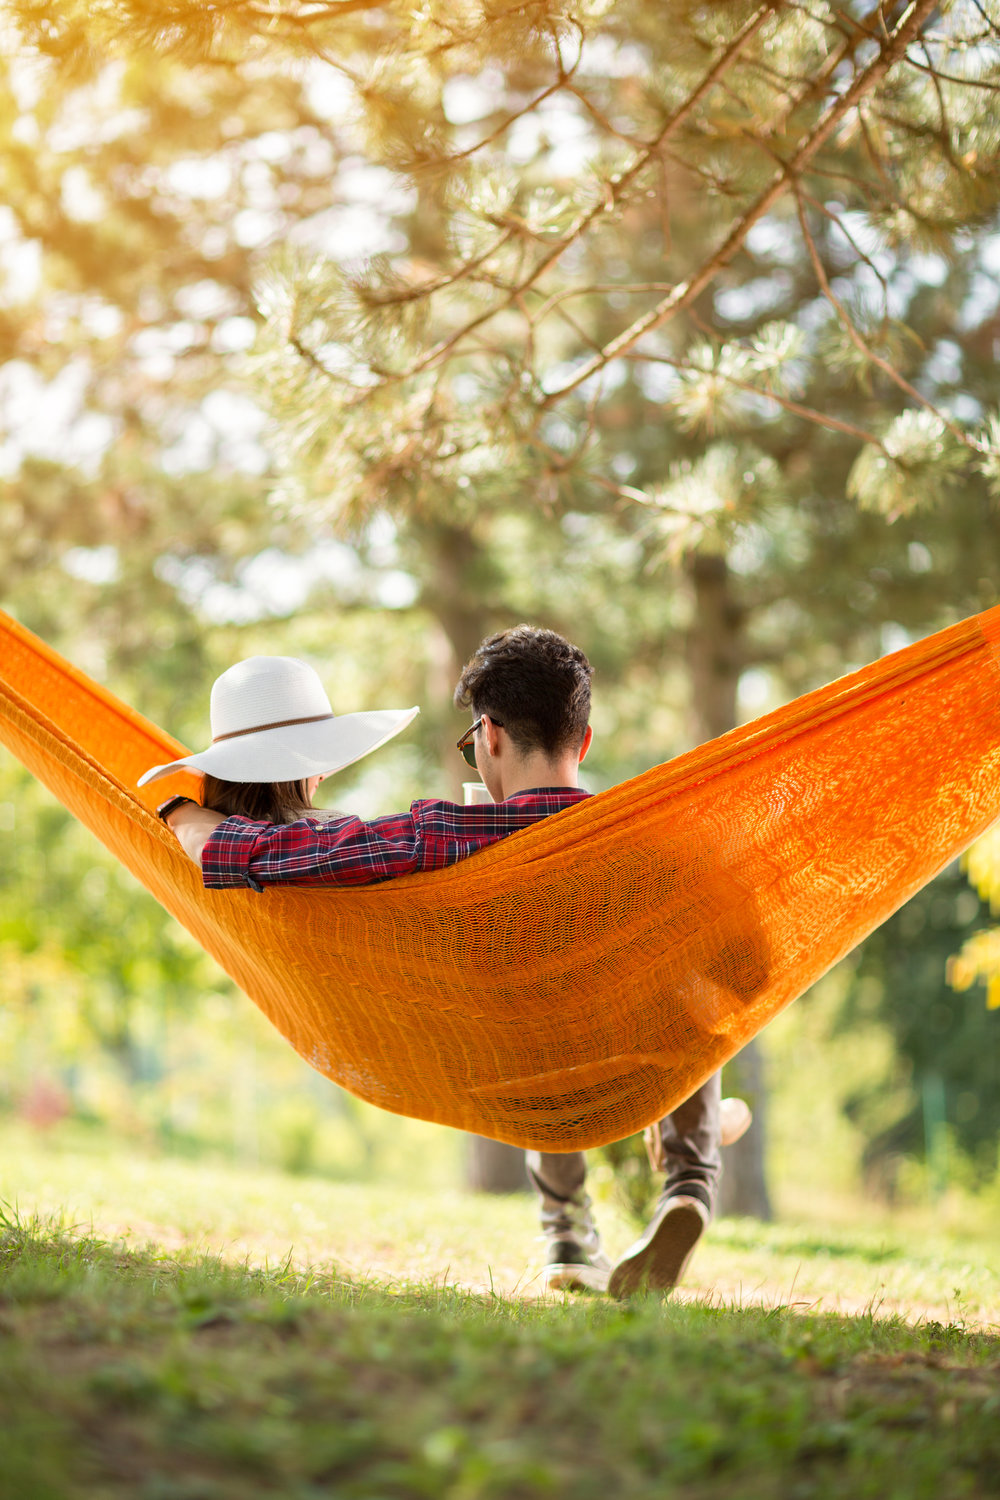 guy-with-girlfriend-in-hammock-from-behind-PQSLV42.jpg